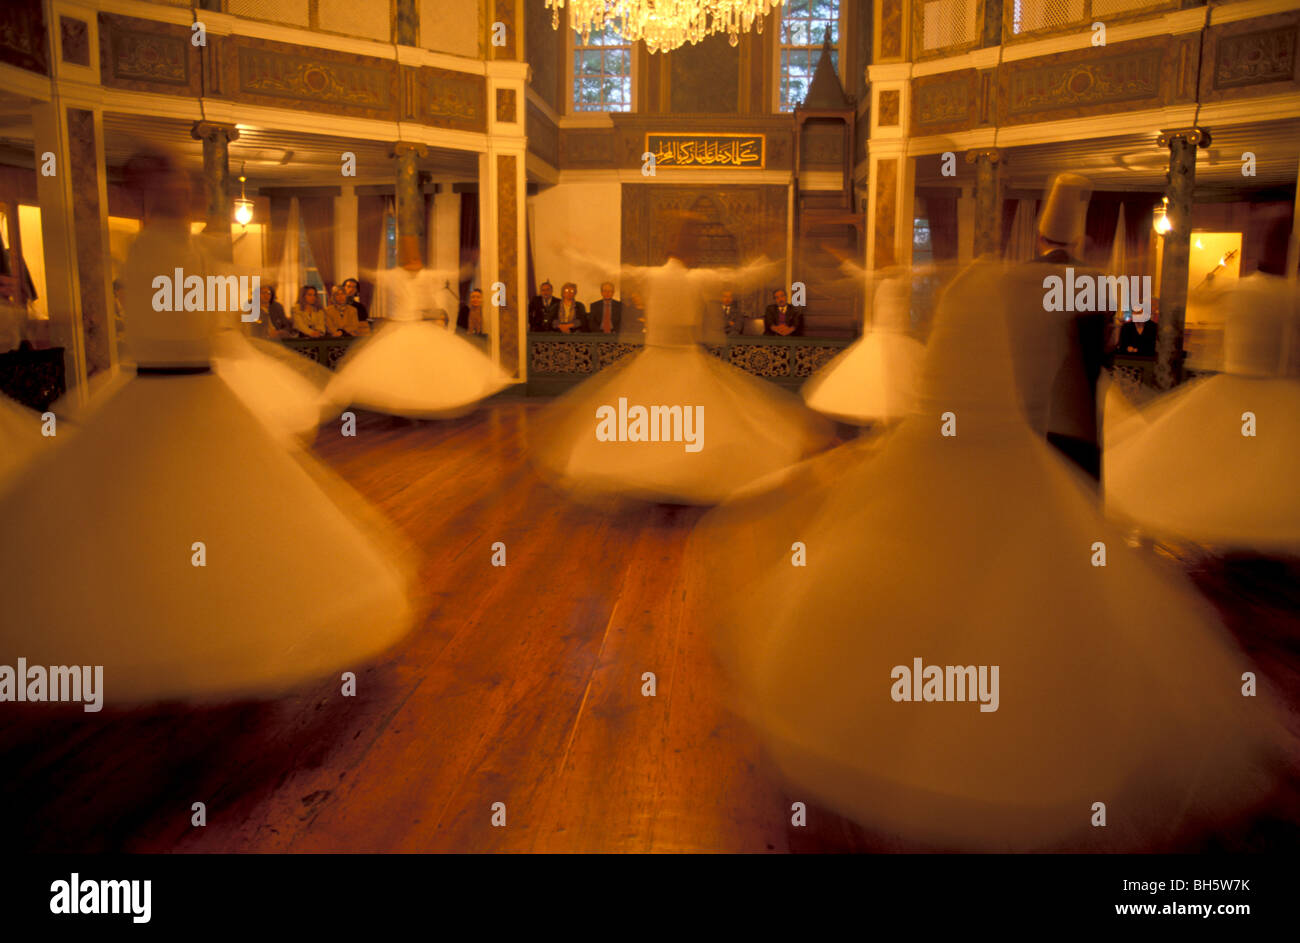 Turkey, Istanbul. The Whirling Dervishes, Sema performance at the Galata Mevlevihanesi - Stock Image